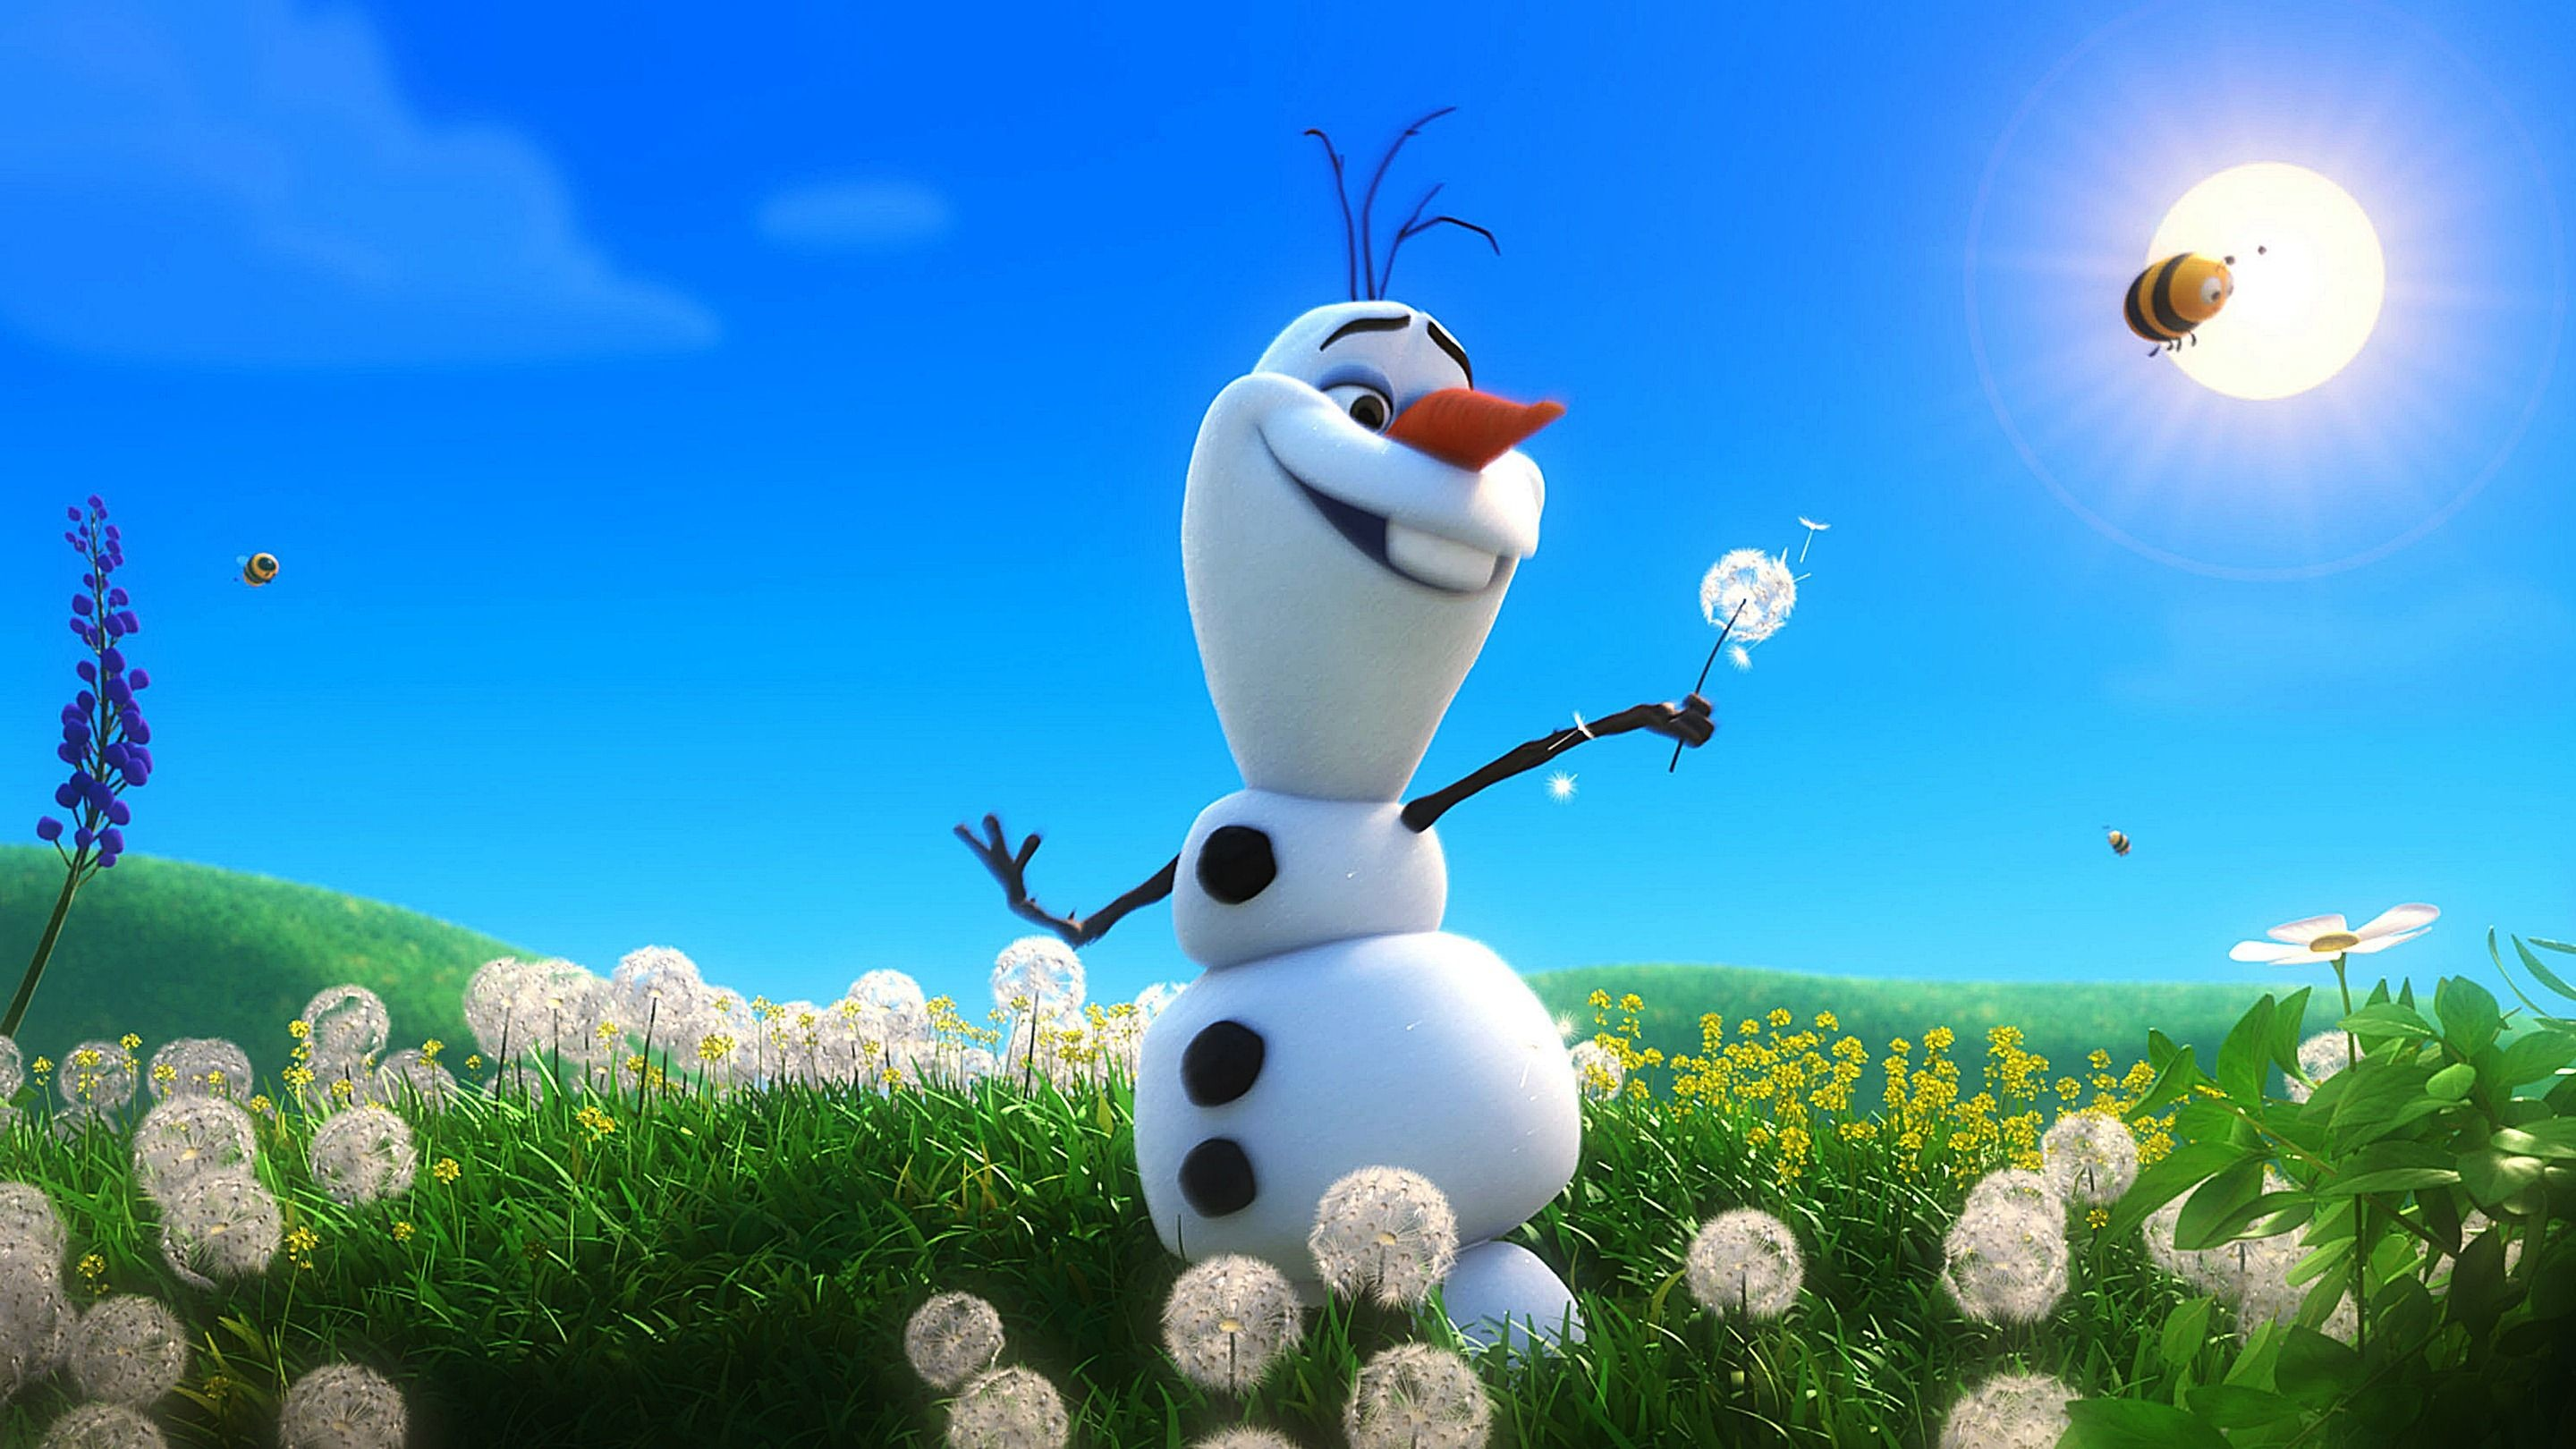 Res: 2880x1620, Olaf Wallpapers HD.